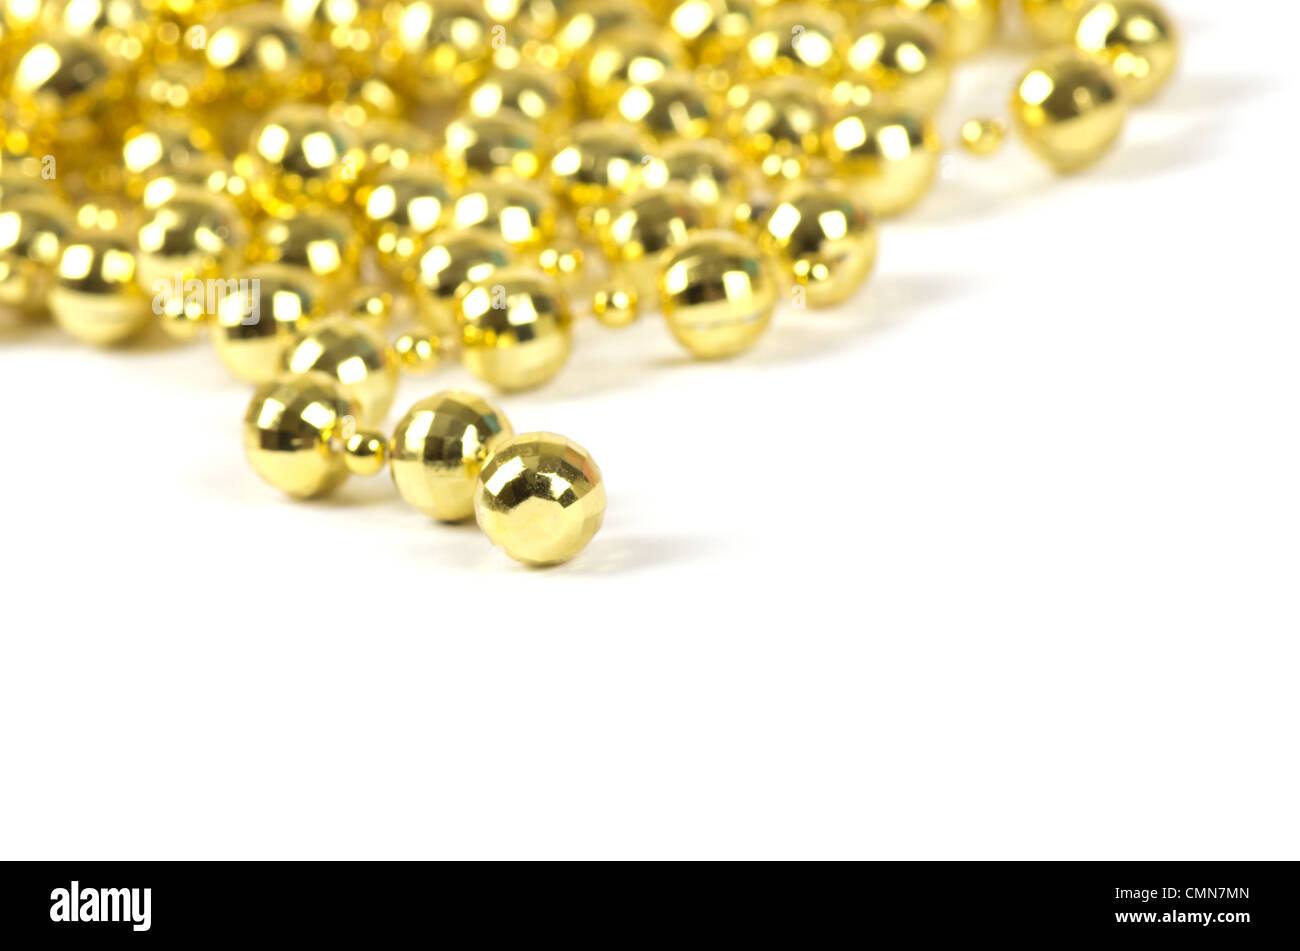 Background made of a brilliant celebratory beads of golden color over white - Stock Image